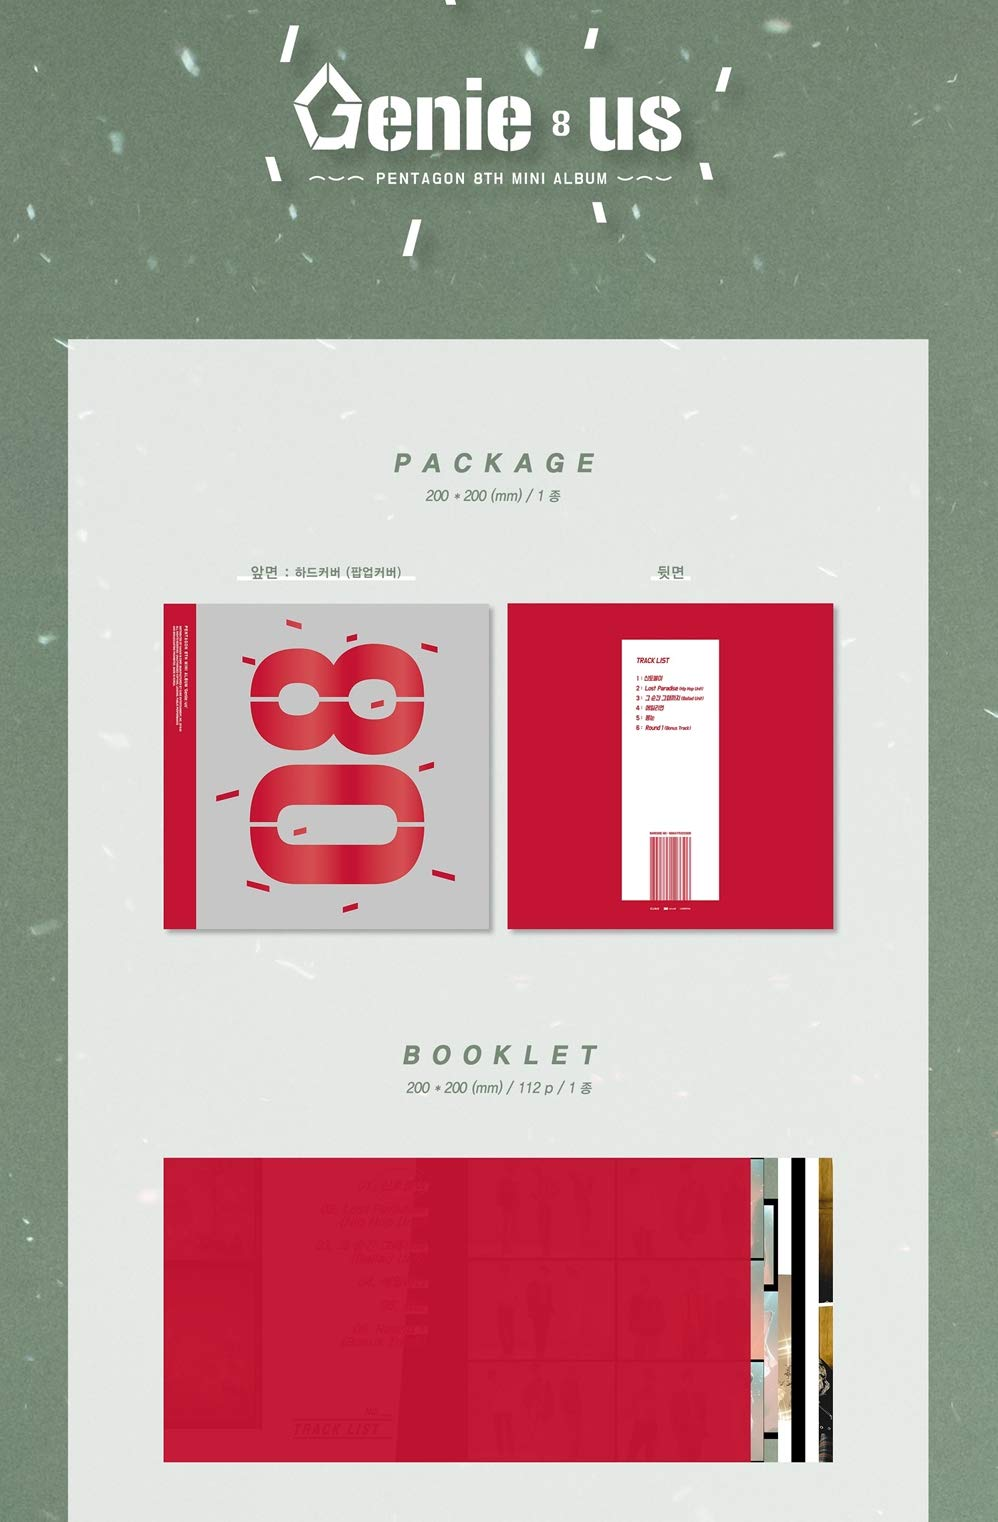 Pentagon - Genie:us (8th Mini Album) 1CD+Booklet+1PostCard+1Photocard+Folded Poster by Cube Entertainment (Image #2)